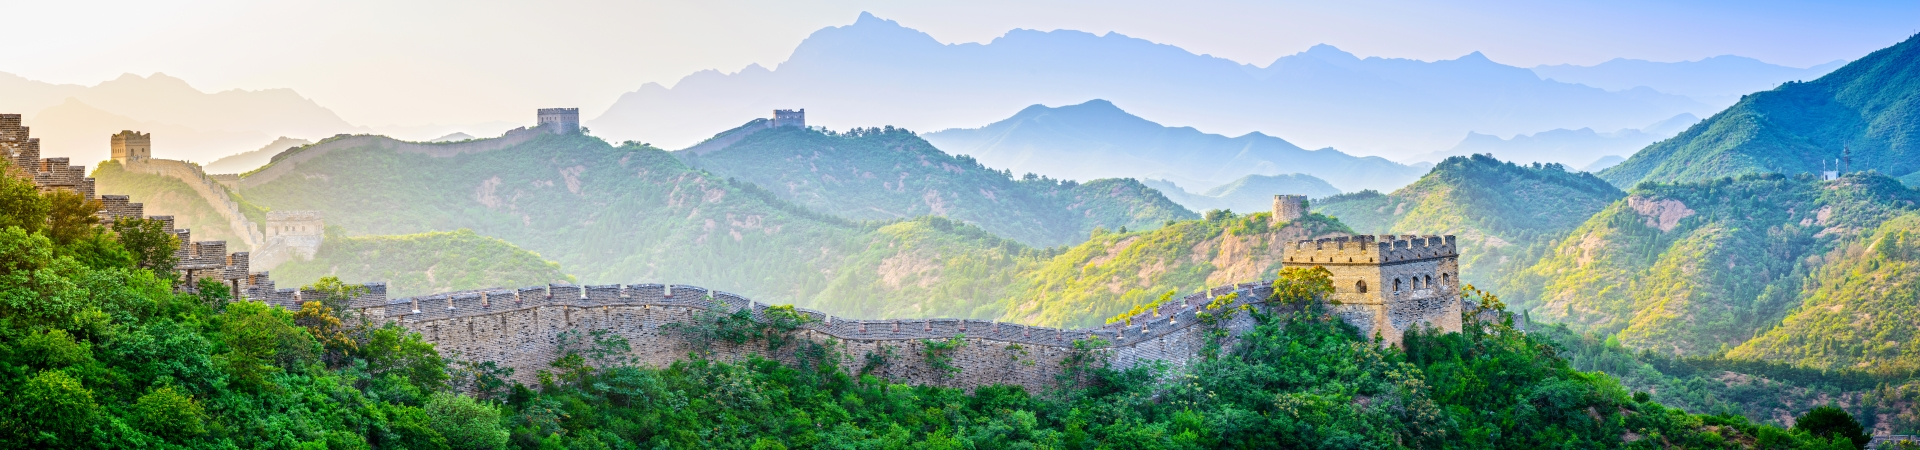 The Great Wall of China stretching off into a hazy distance